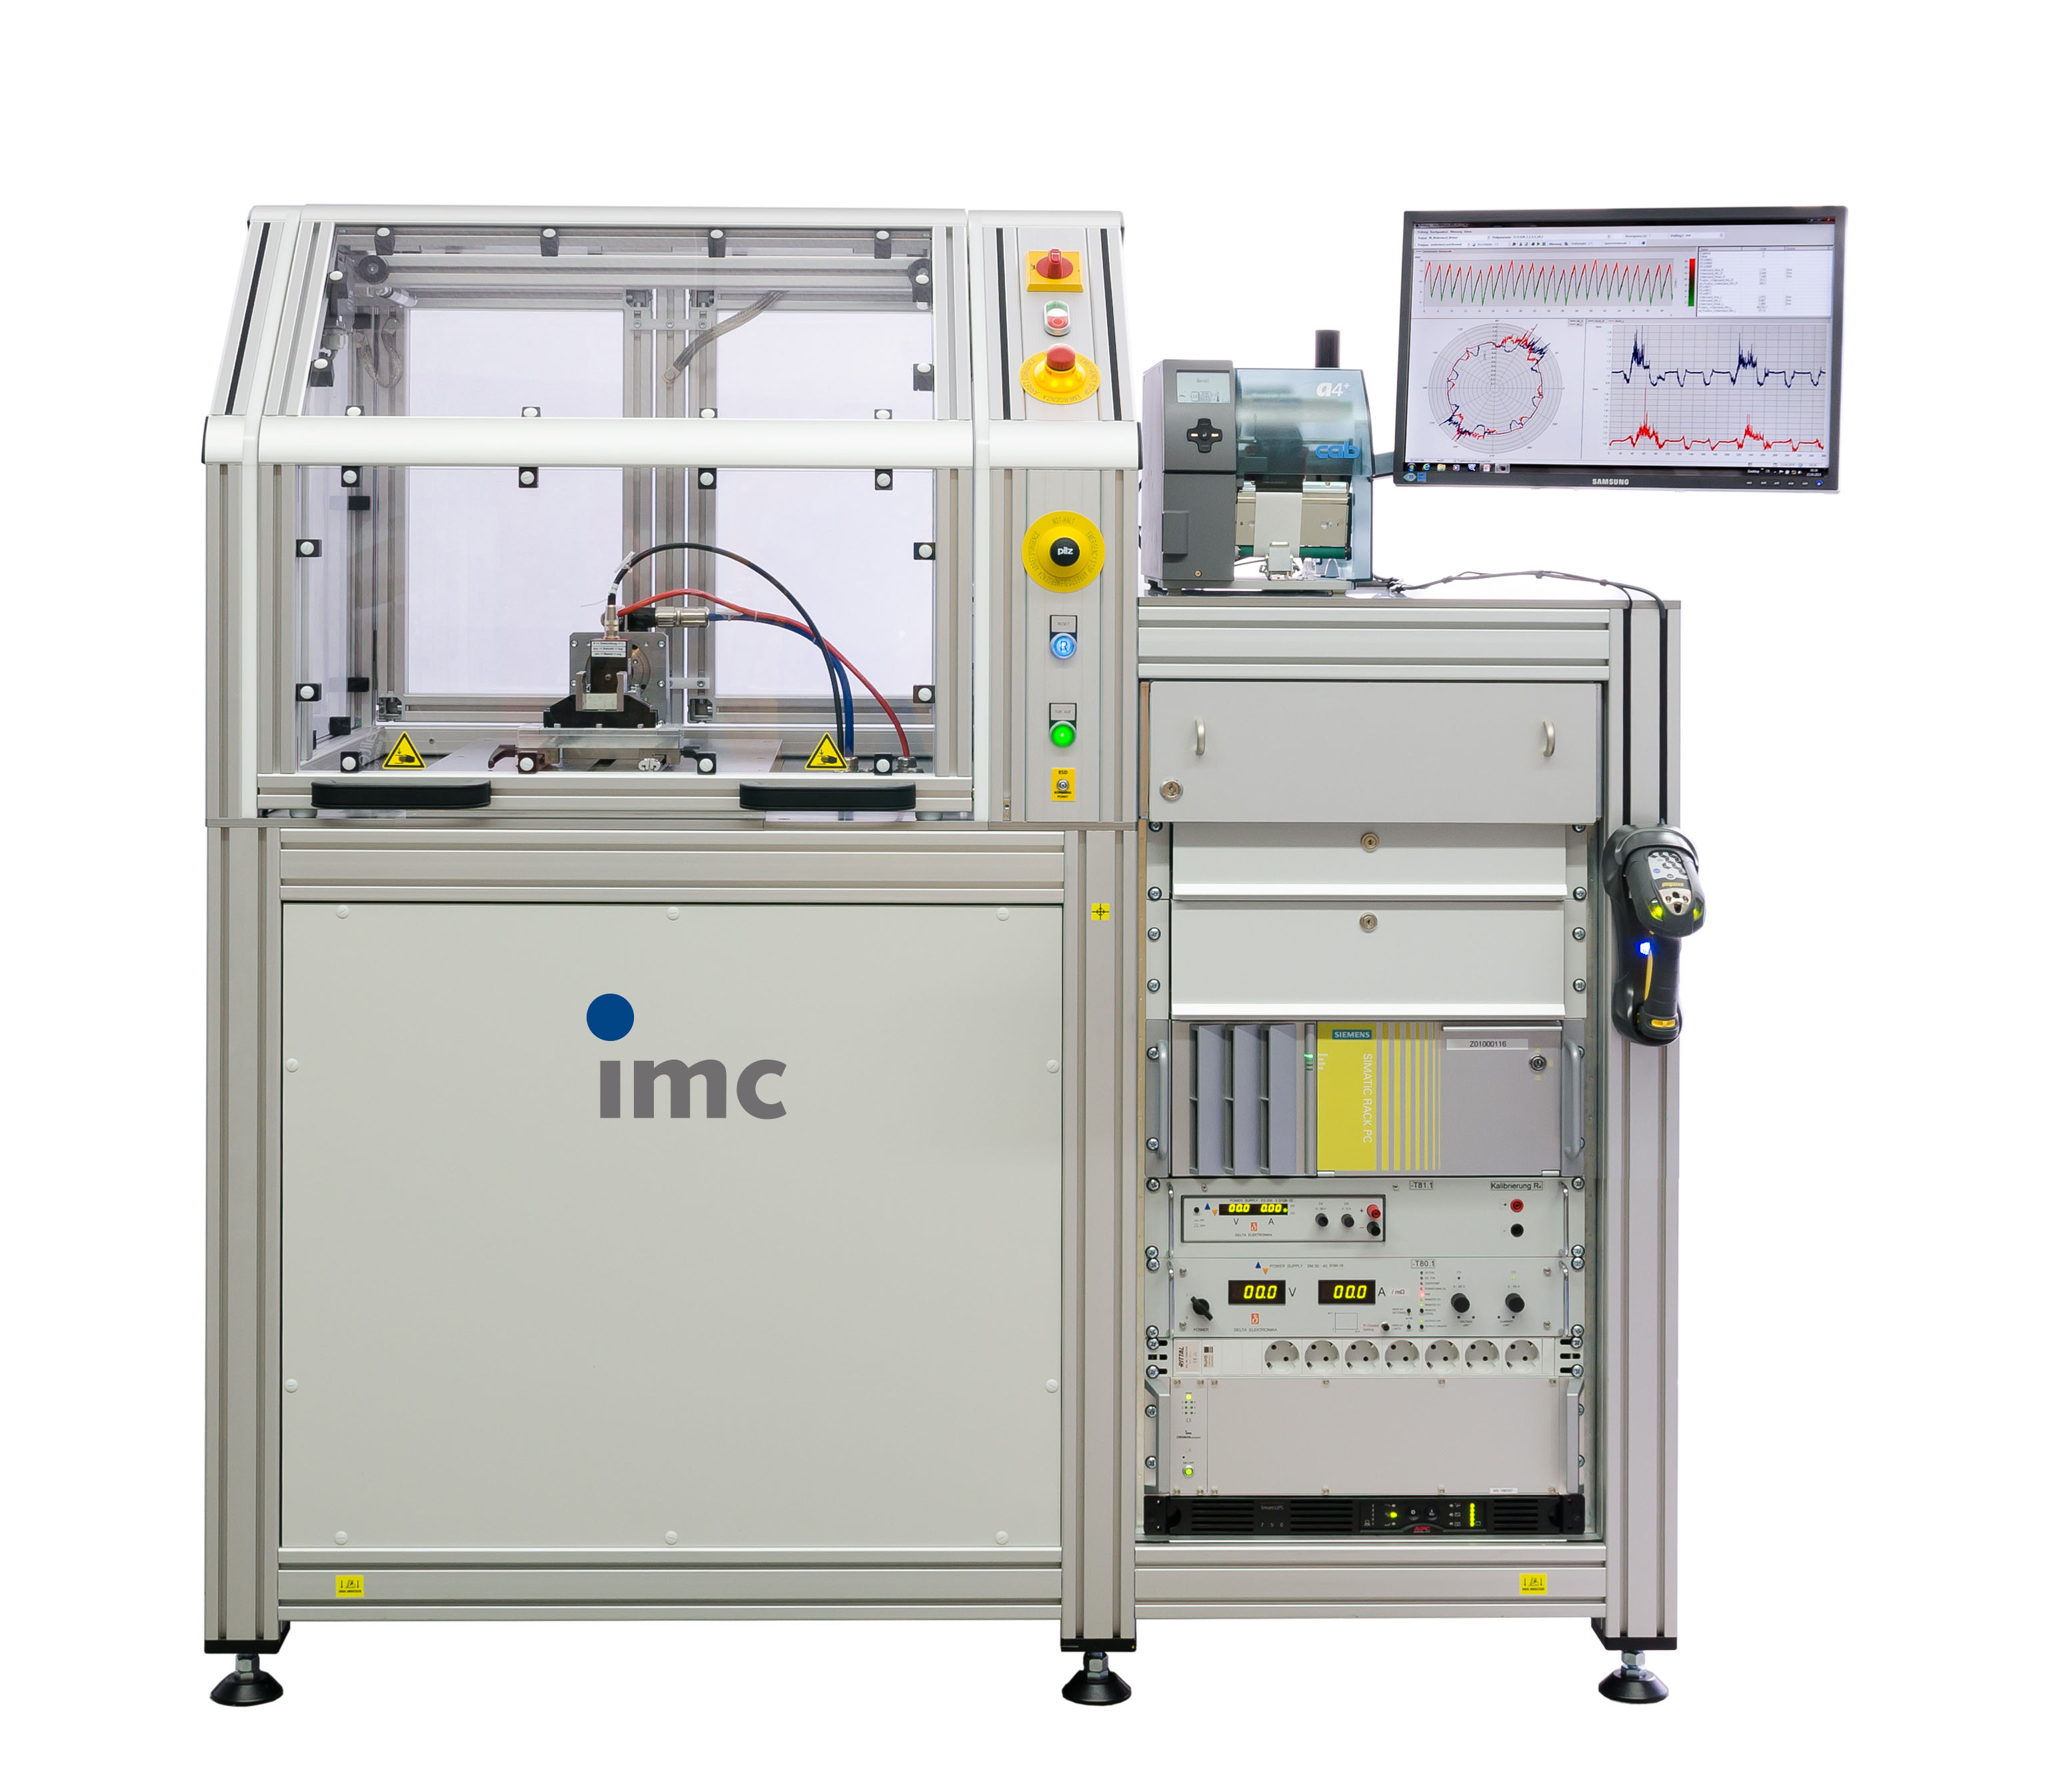 Electric Motor Test Stands Imc Me Systeme Gmbh